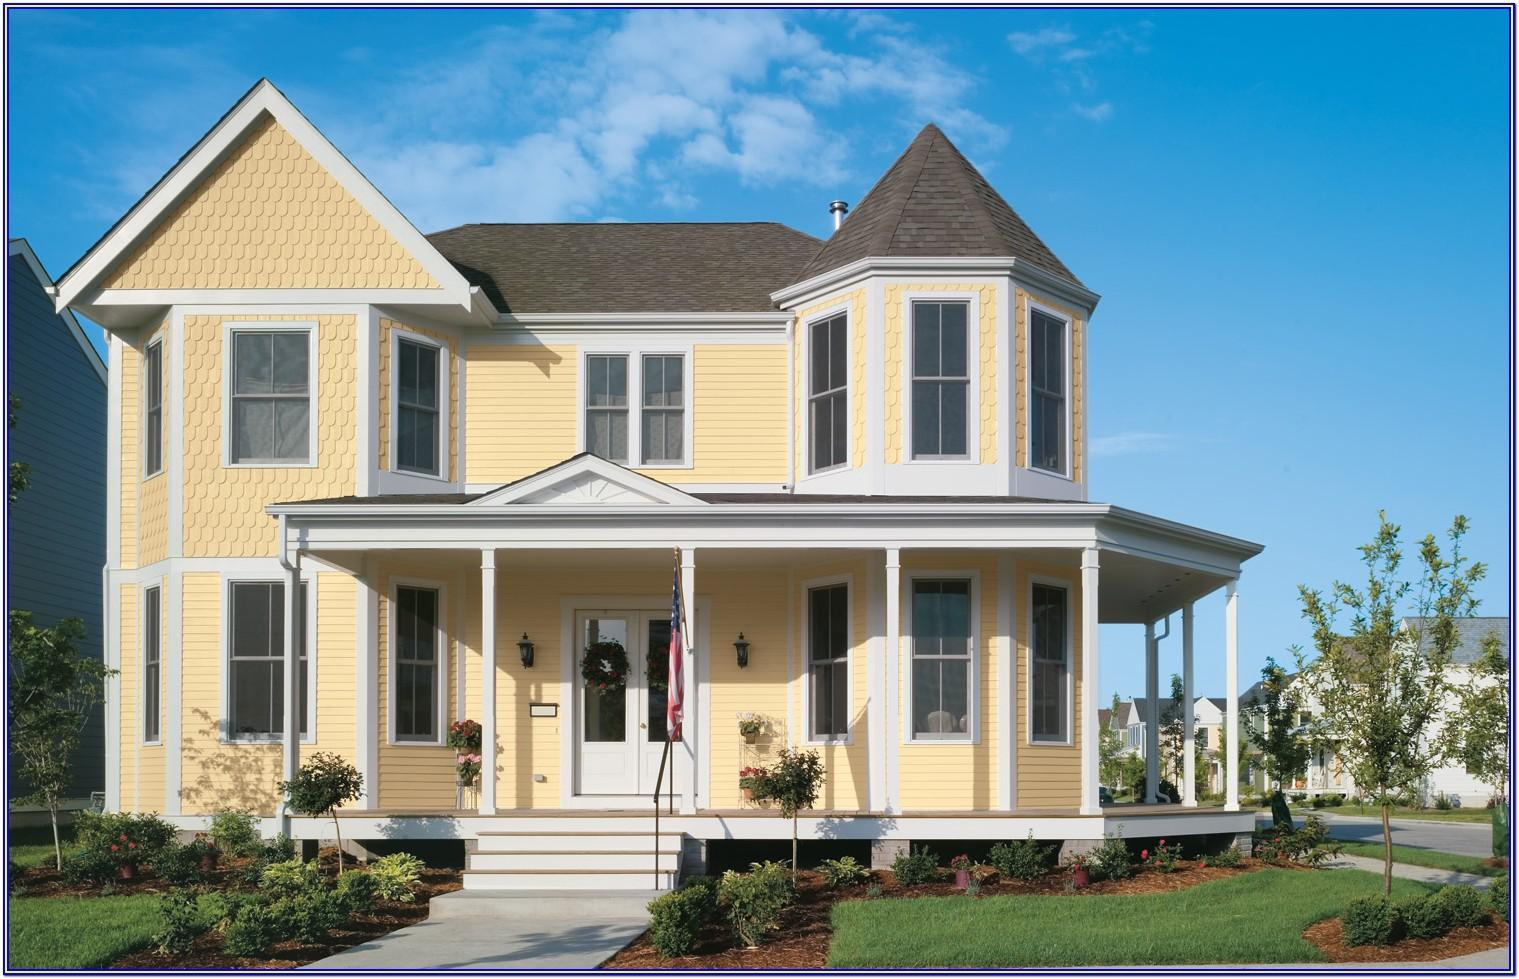 Exterior Color Schemes 2019